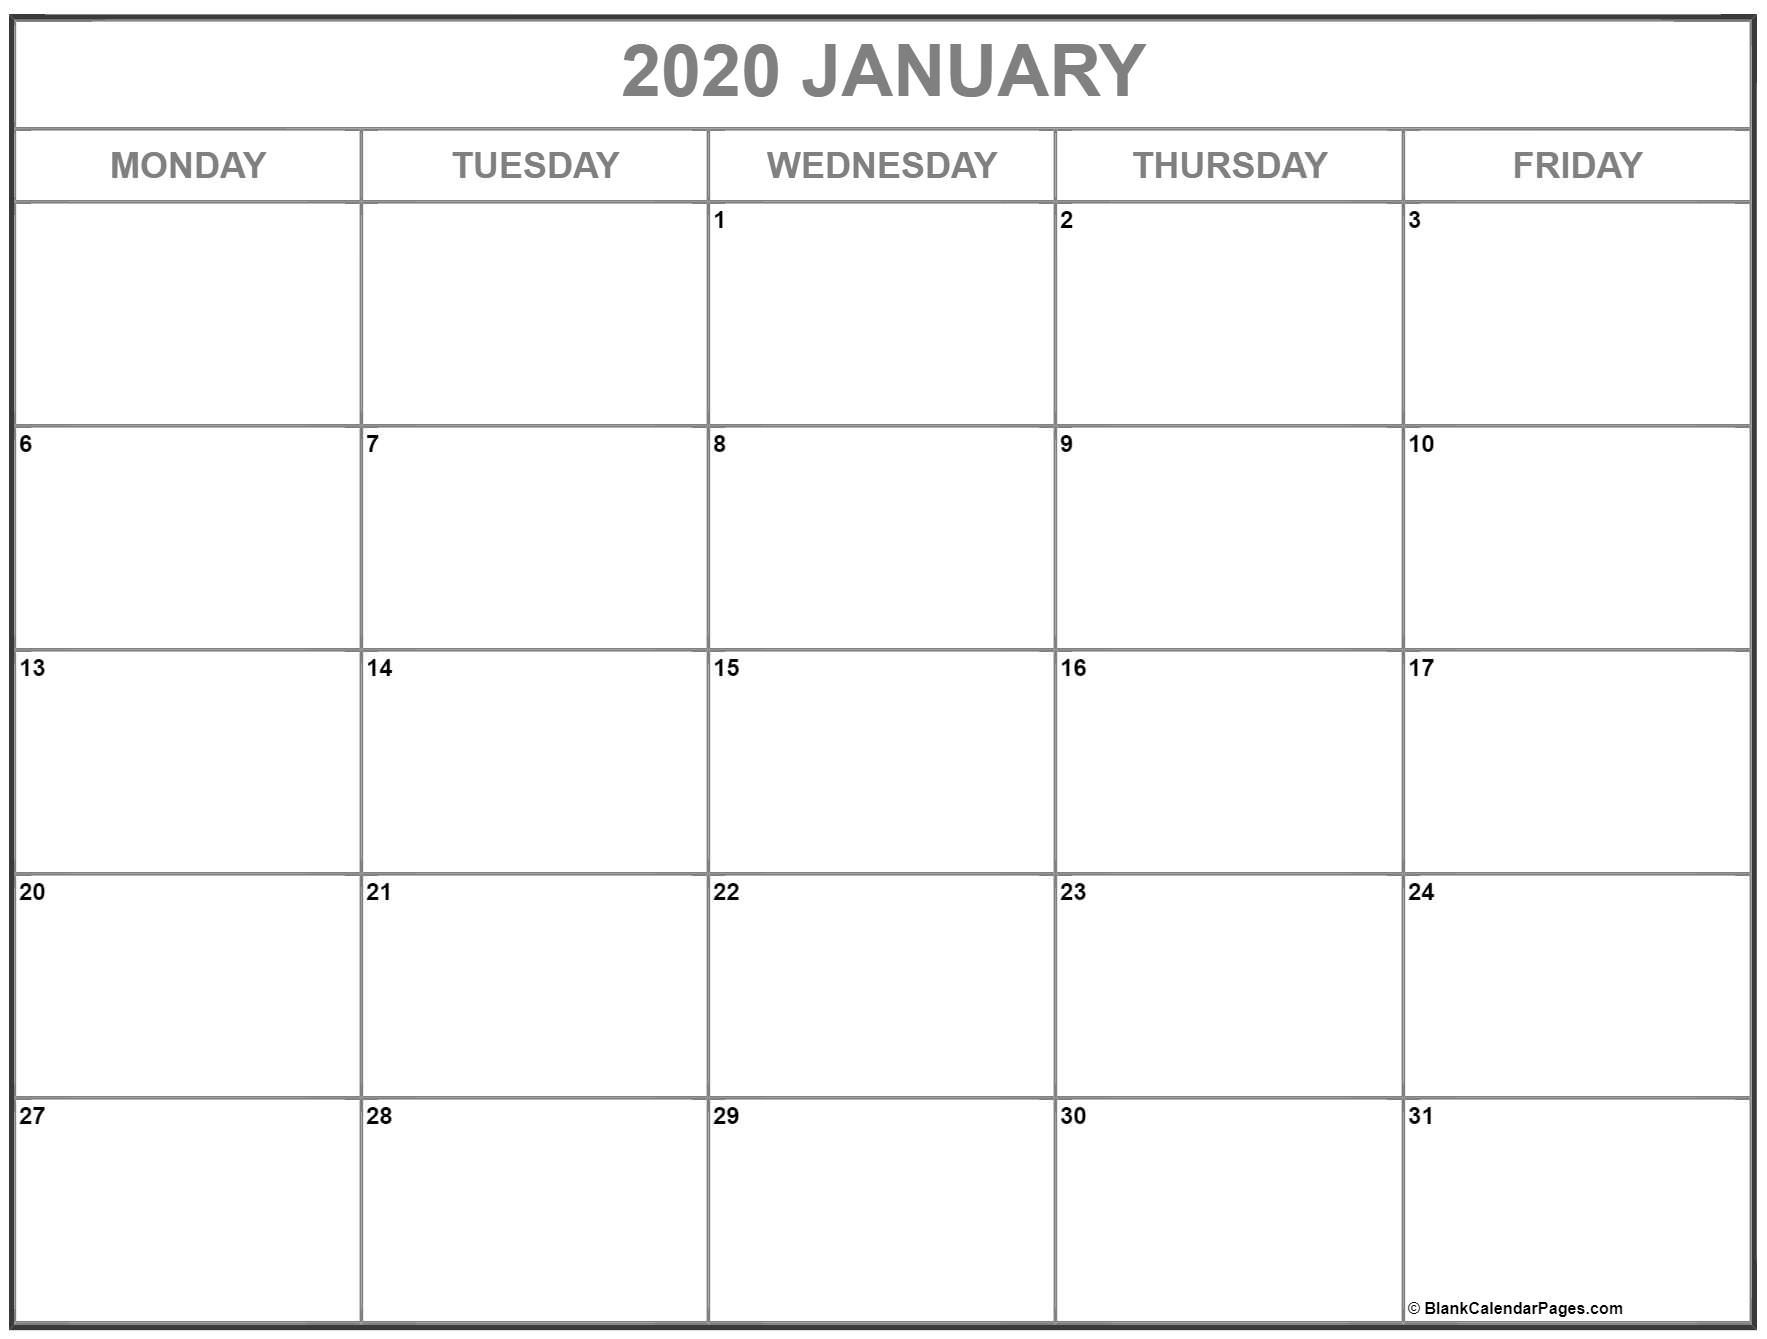 Remarkable Blank Monday To Friday Calendar Template